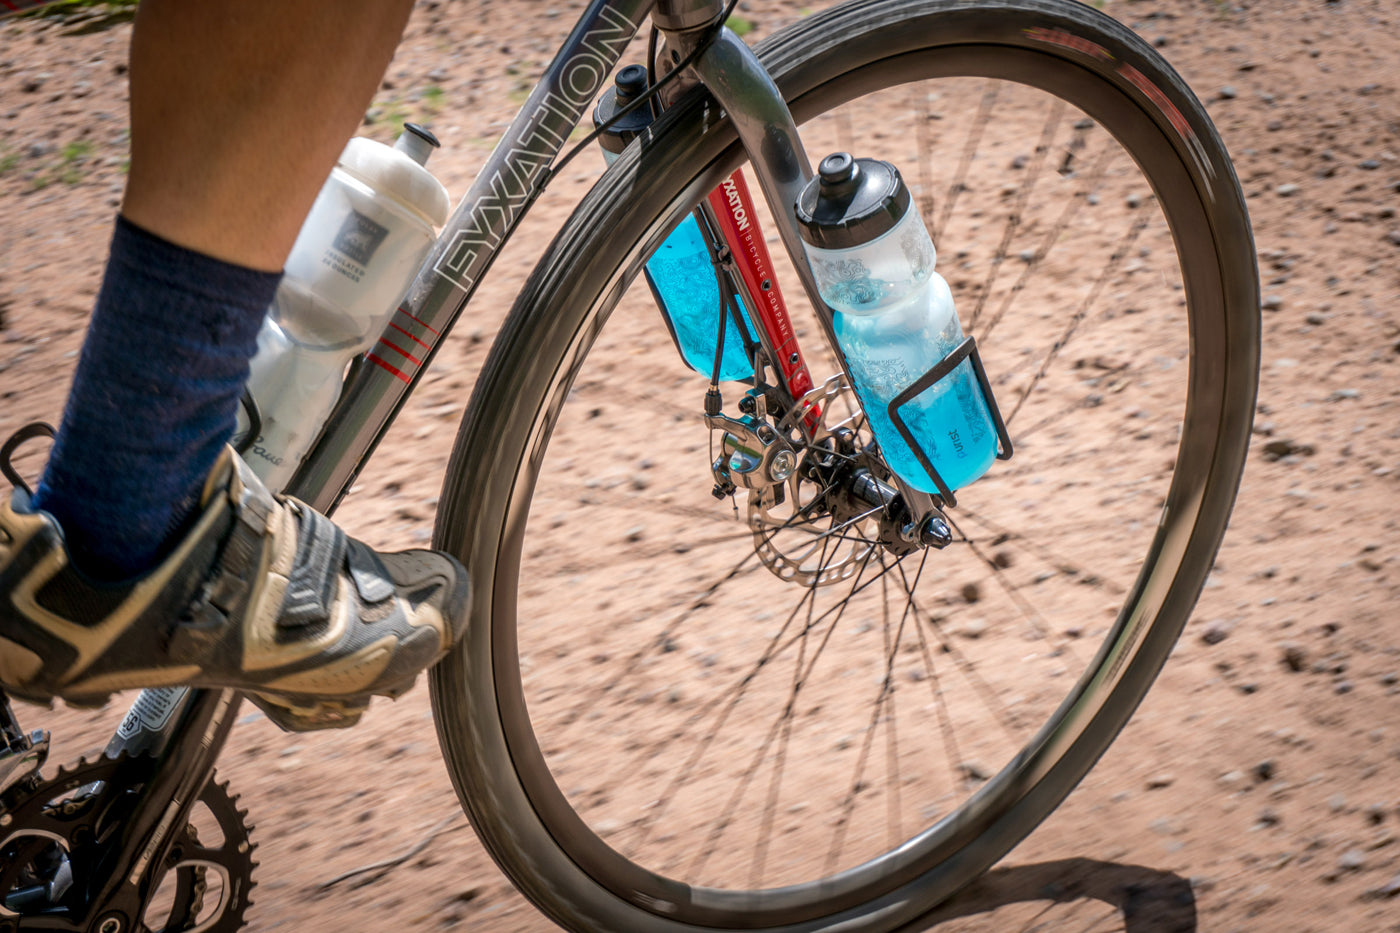 Clement Xplor MSO tire in action on the gravel